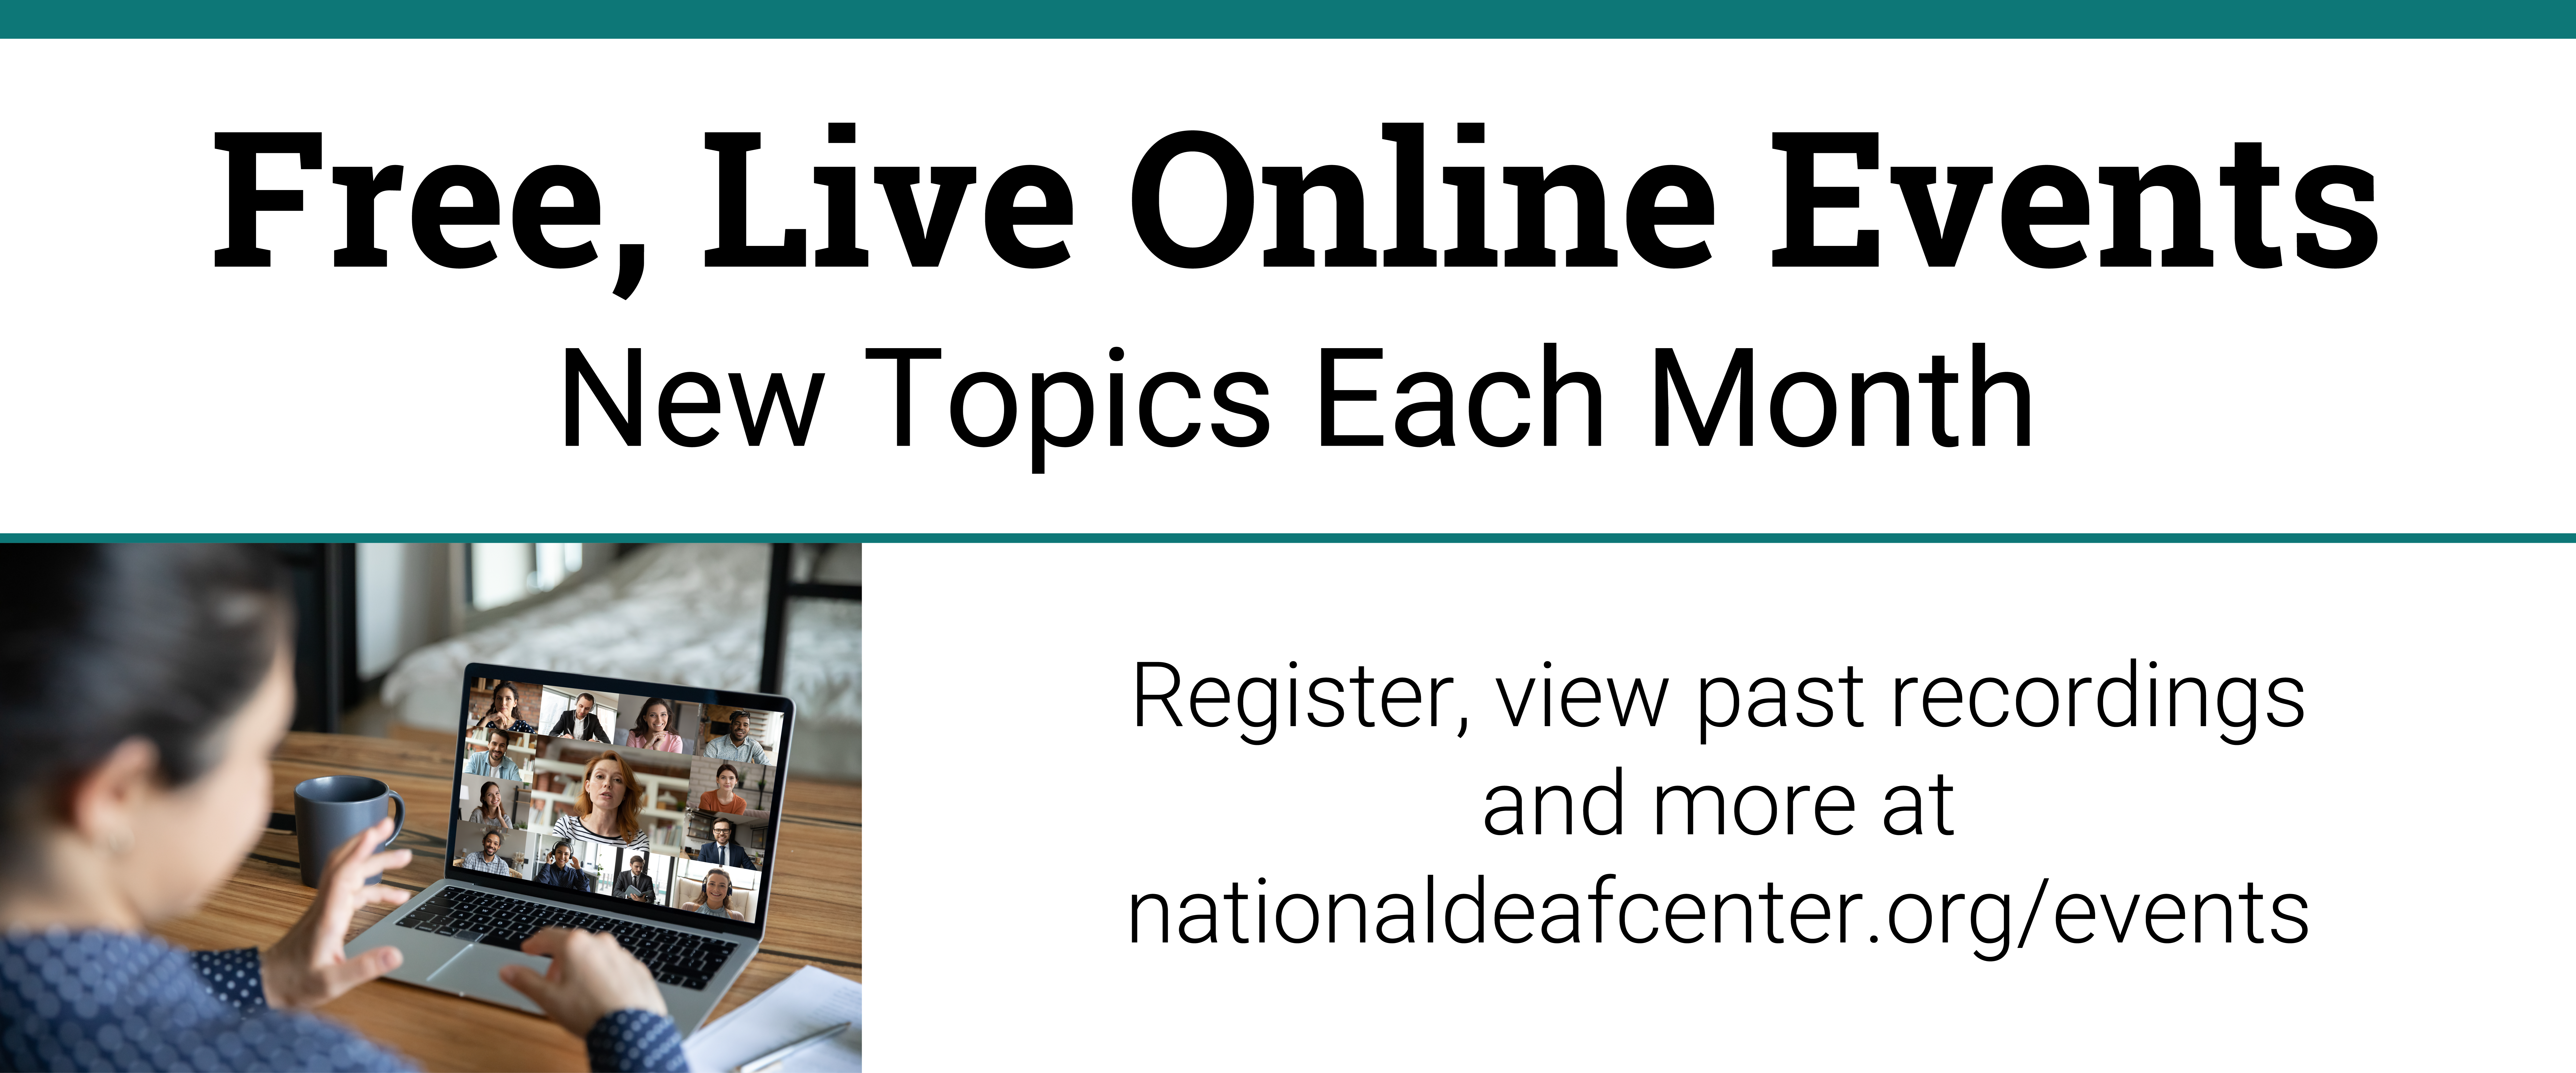 A Text: Free, Live Online Events. New Topics Each Month. Register, view past recordings and more at nationaldeafcenter.org/events. Lower left corner is an image with a woman gesturing toward a laptop with several people on screen.black woman sitting on the floor with a laptop in her lap. A cat, cup of coffee and phone are near her. Text: Free Self-Paced Professional Development. Check out our online learning library.